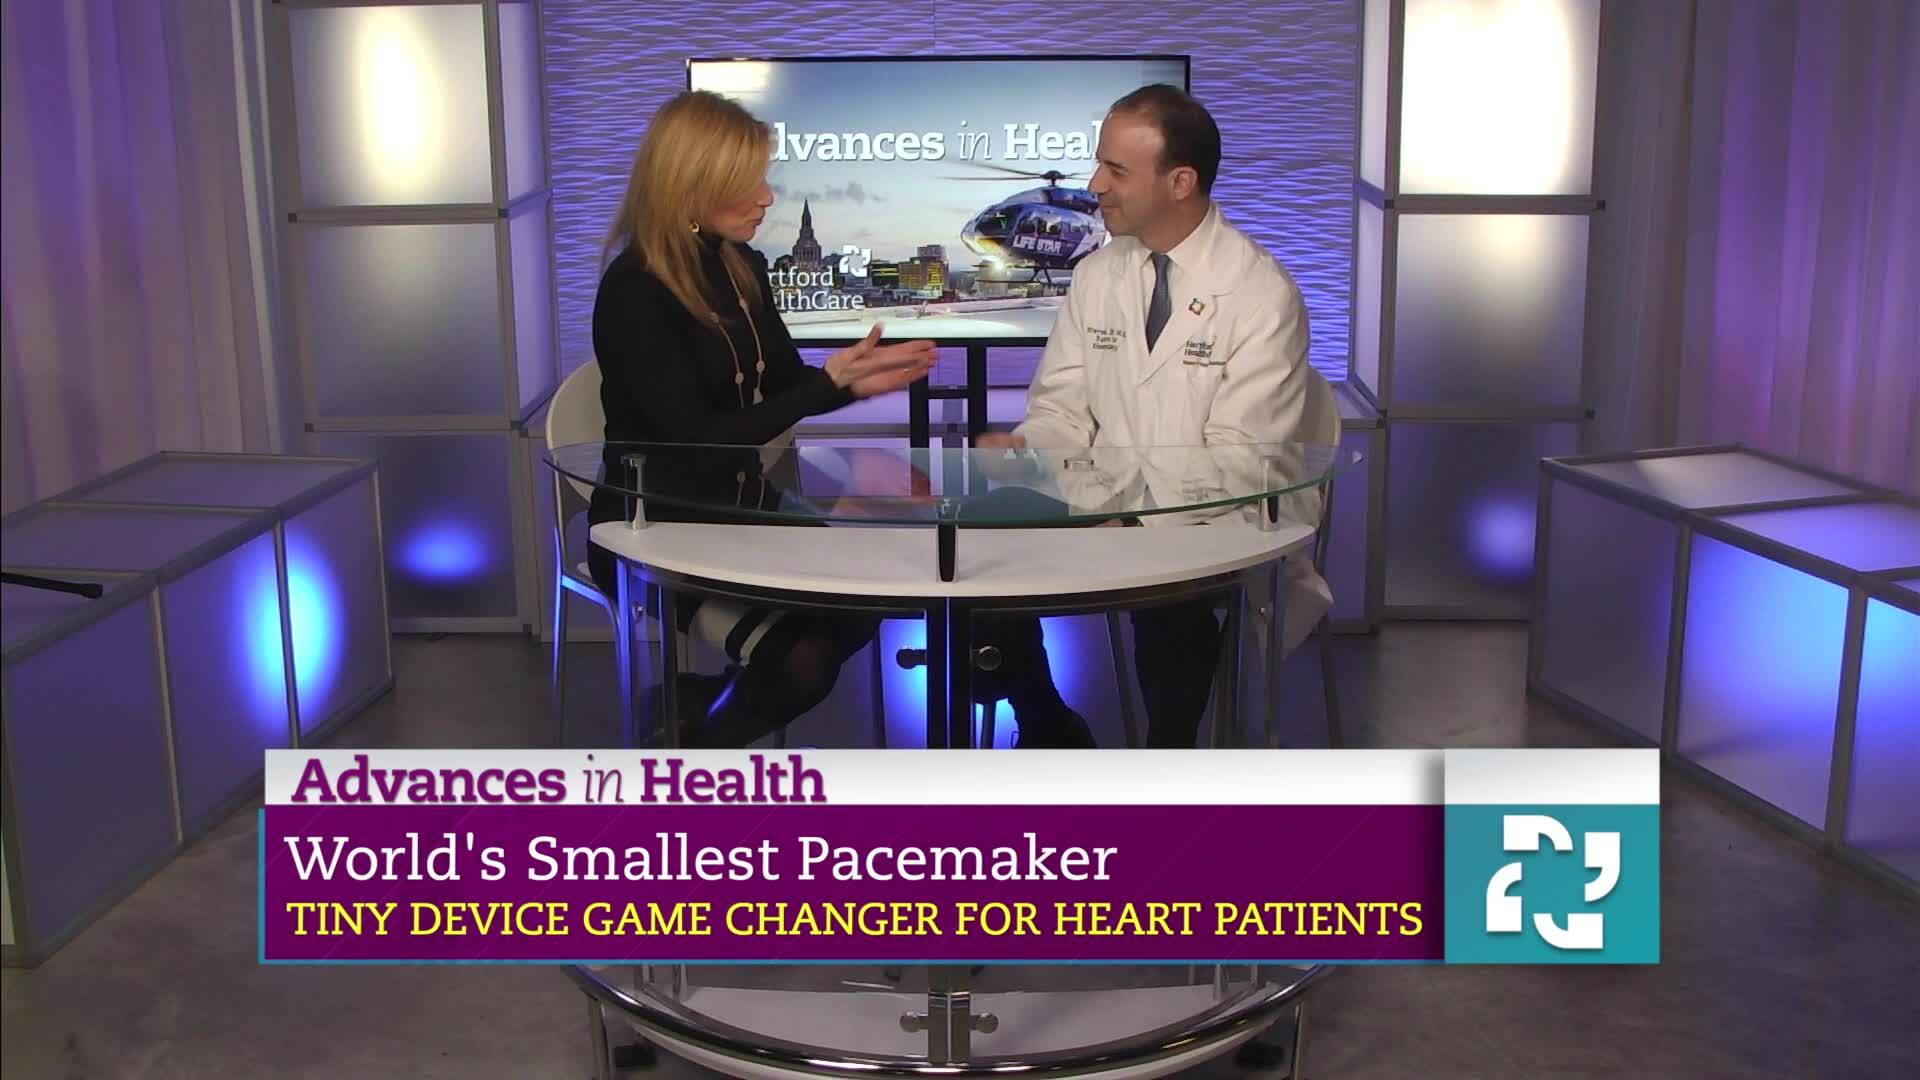 Advances in Health: World's Smallest Pacemaker